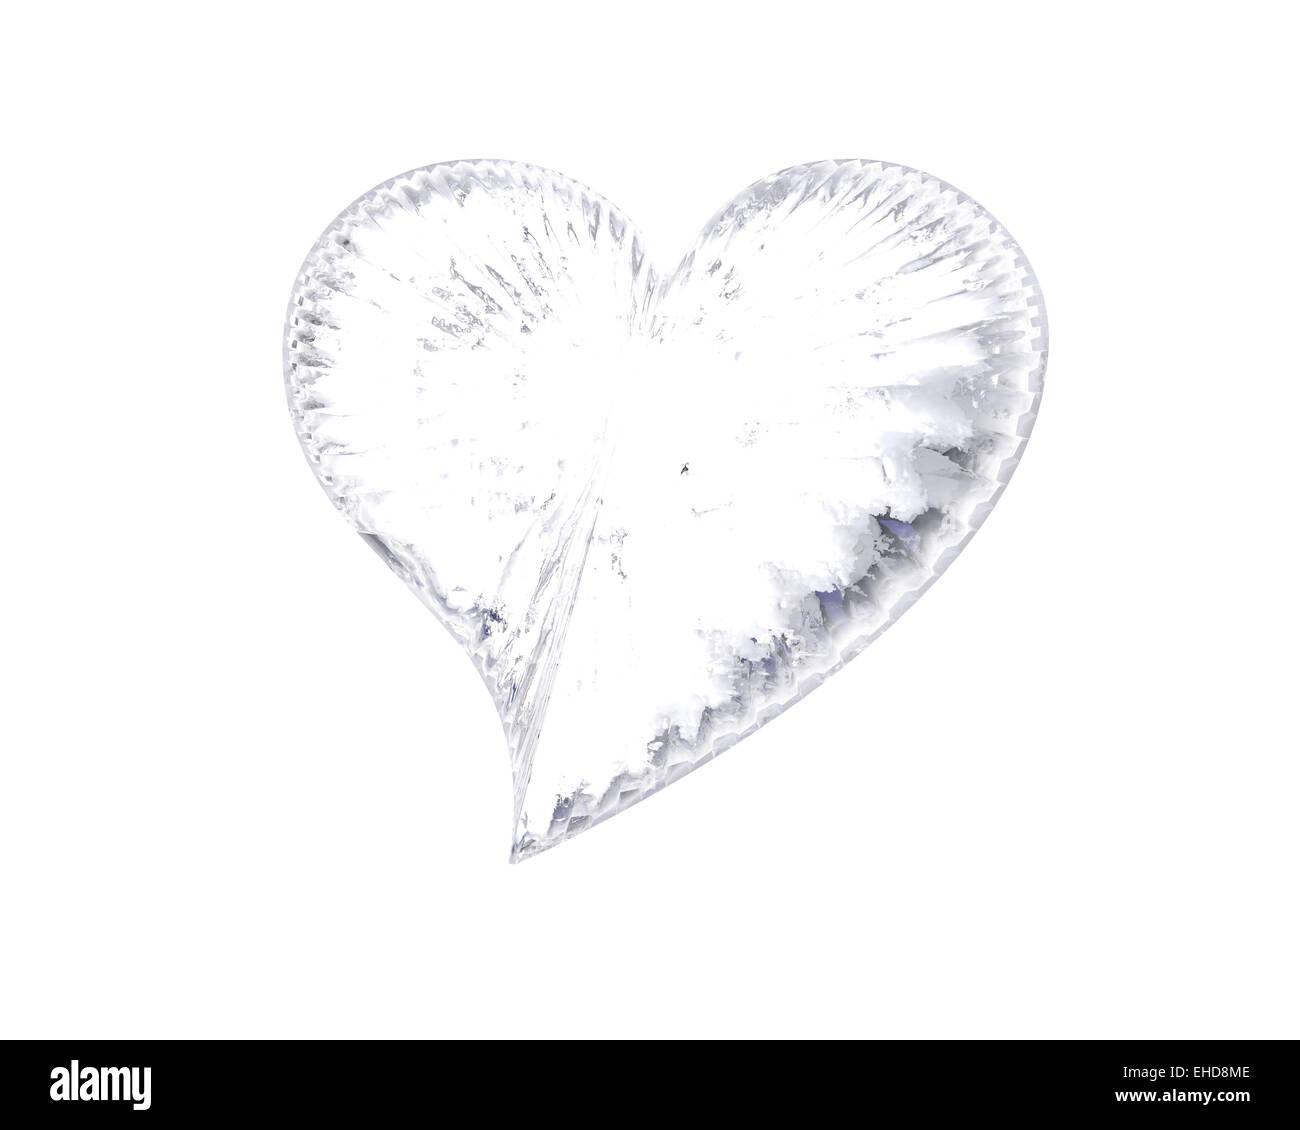 icy heart - Stock Image